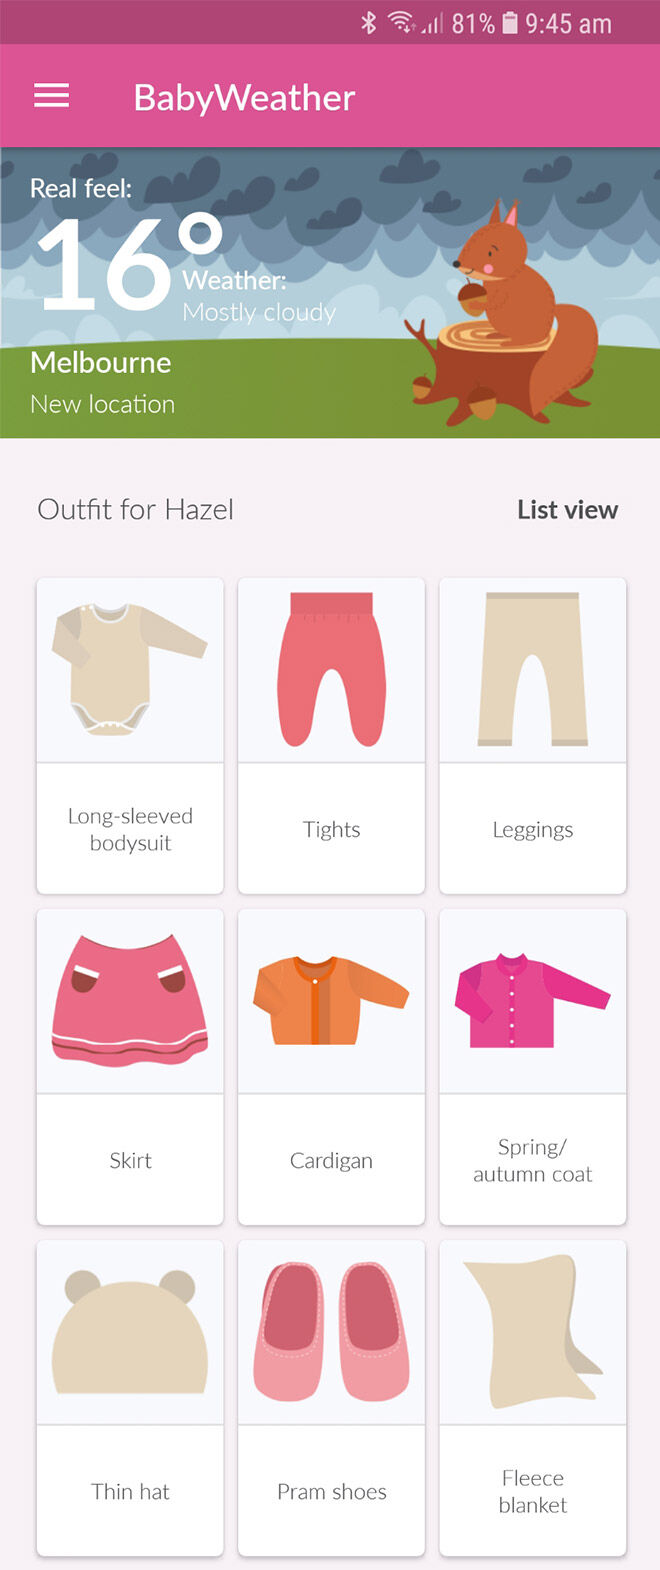 BabyWeather app outfit chooser